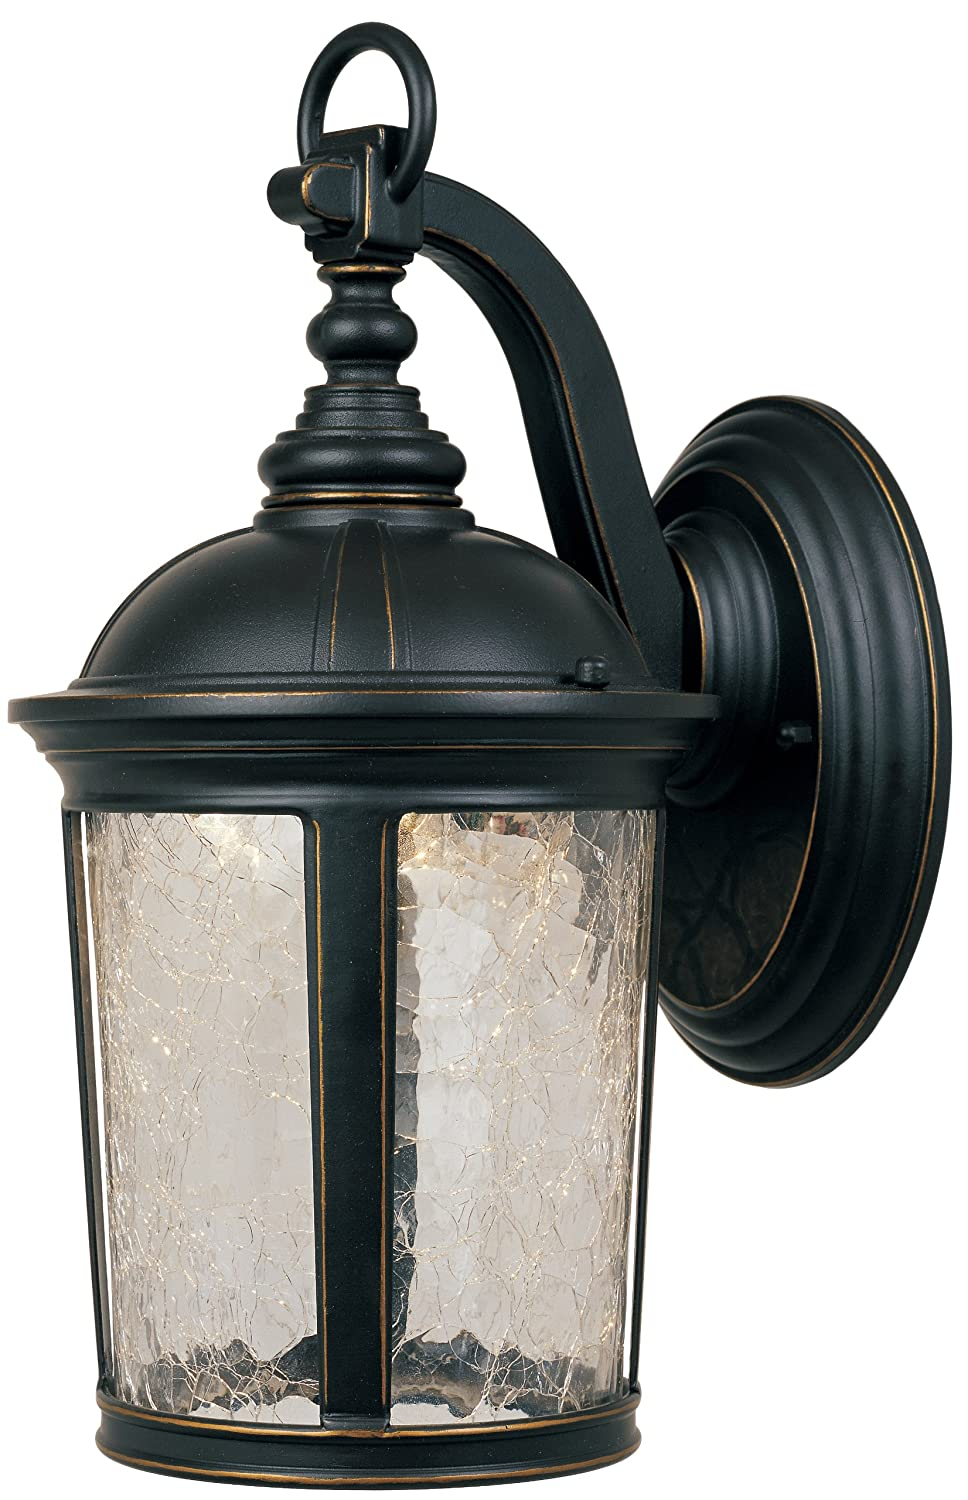 Designers fountain led21321 abp winston wall lanterns aged bronze designers fountain led21321 abp winston wall lanterns aged bronze patina wall porch lights amazon aloadofball Image collections